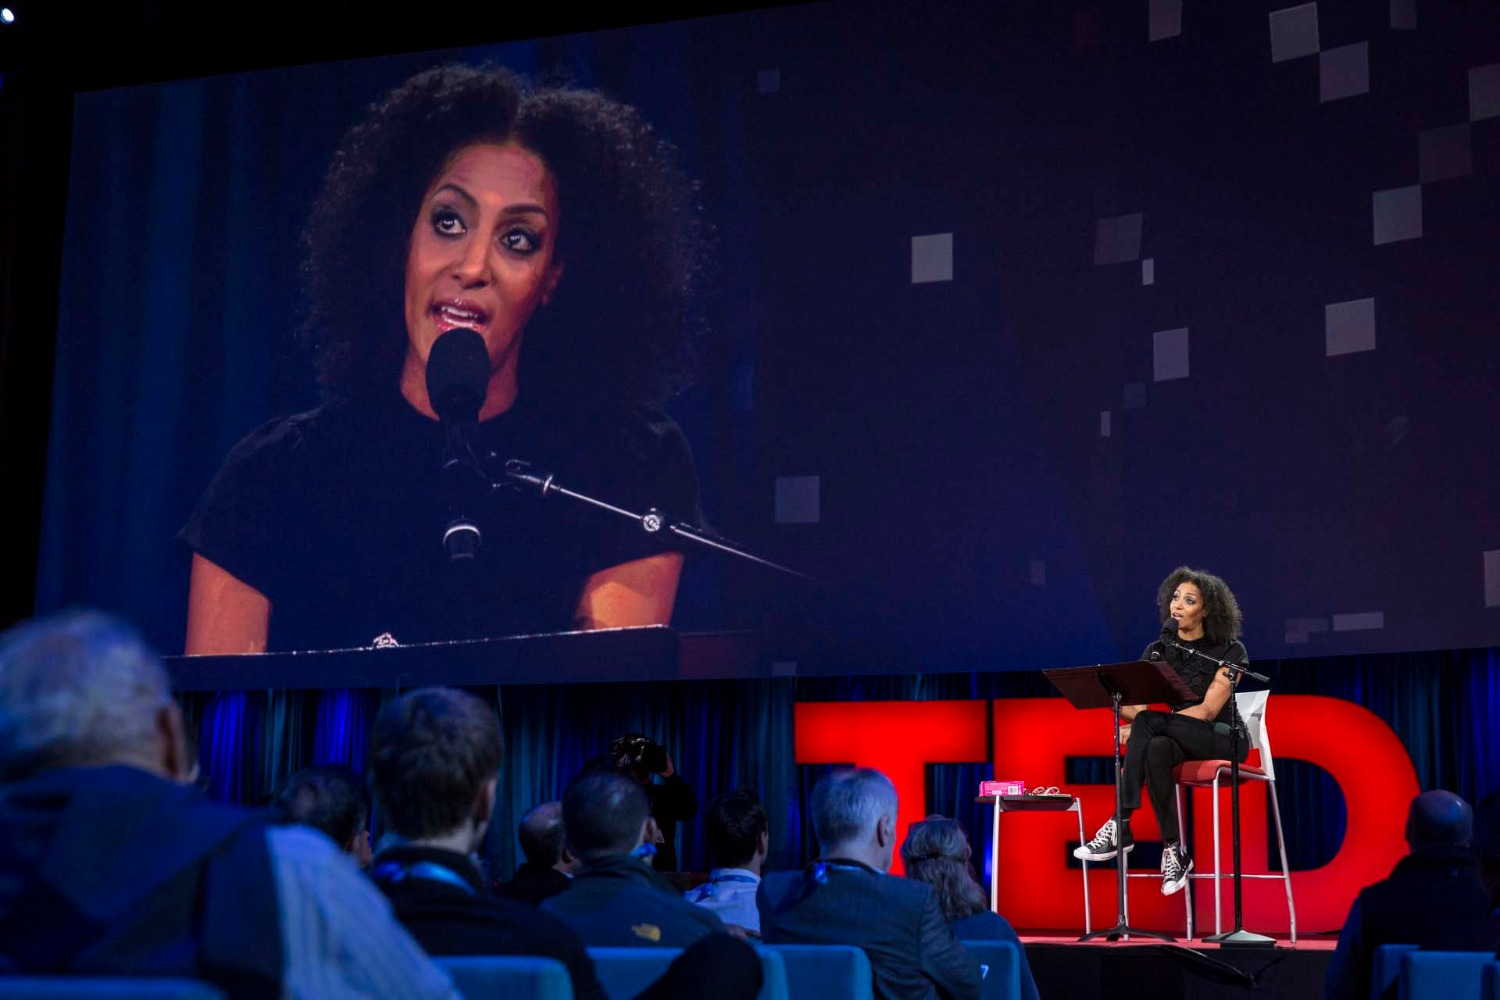 Sarah Jones speaks at TED2015 - Truth and Dare, Session 9, March 16-20, 2015, Vancouver Convention Center, Vancouver, Canada. Photo: Bret Hartman/TED